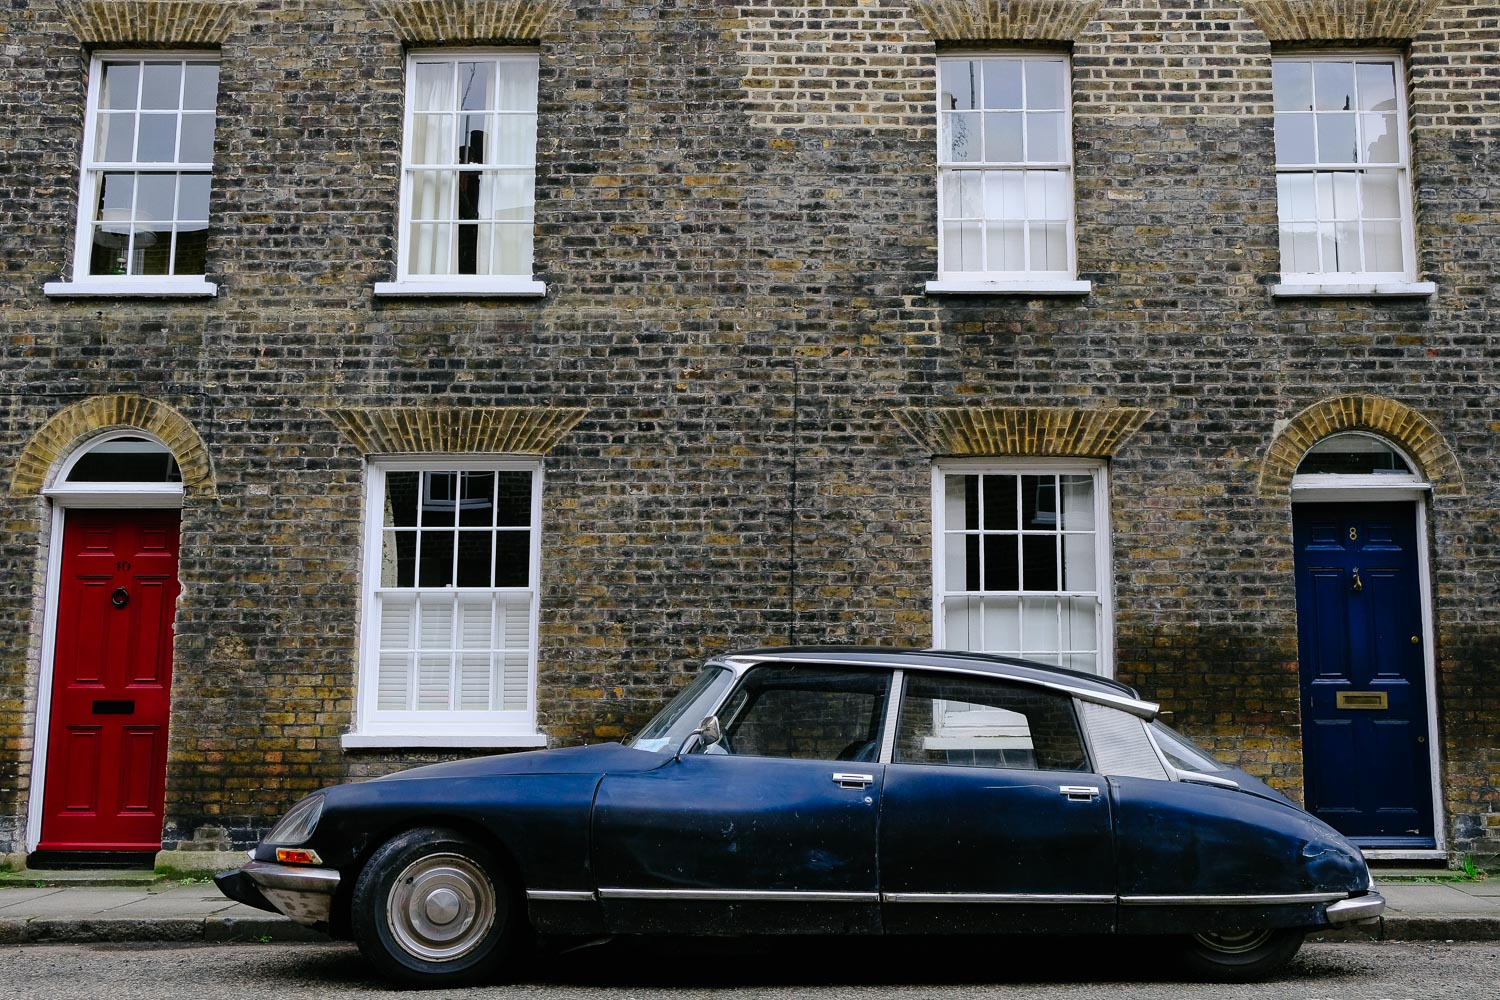 A Citroën DS on Roupell St.